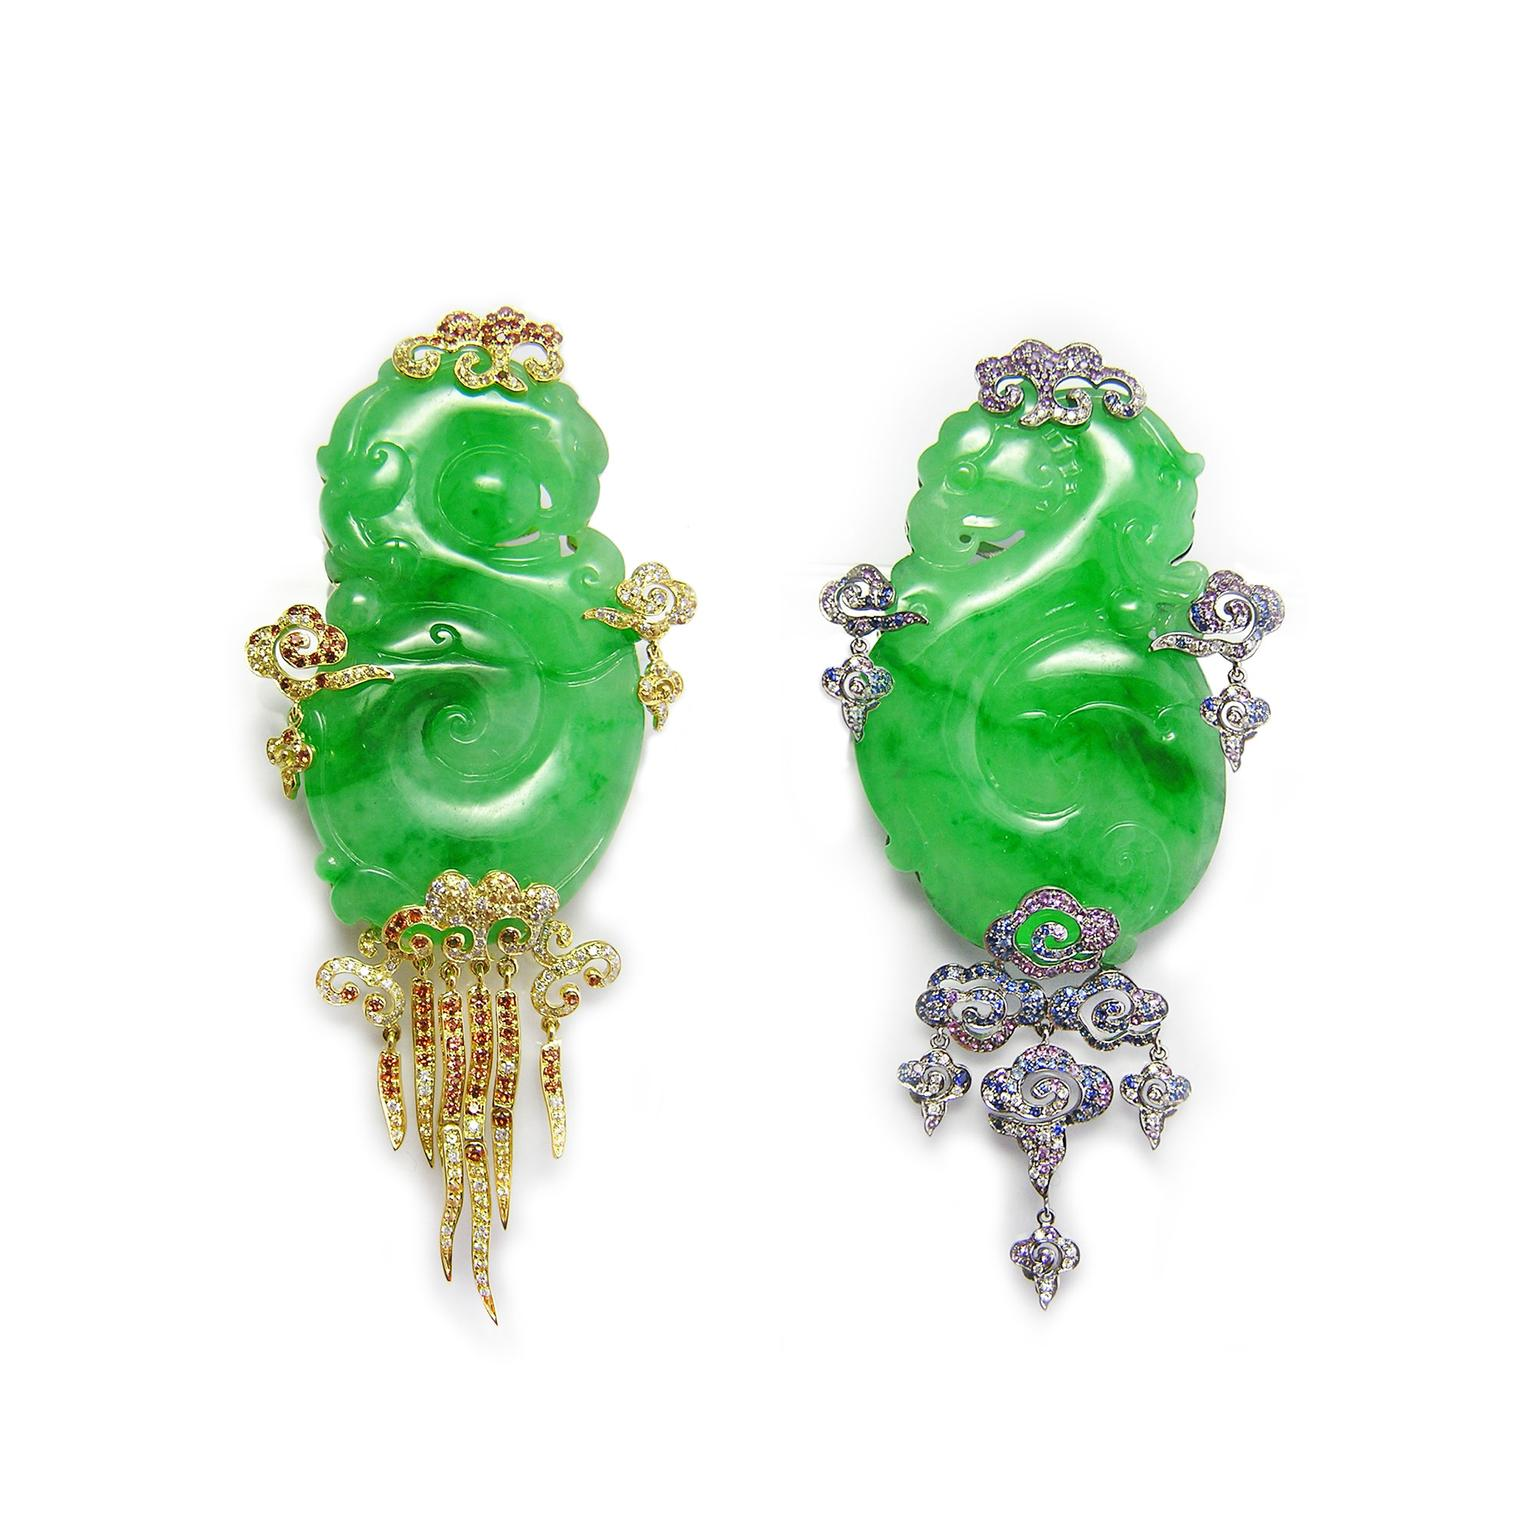 Fei Liu Cloud Wind jadeite earrings